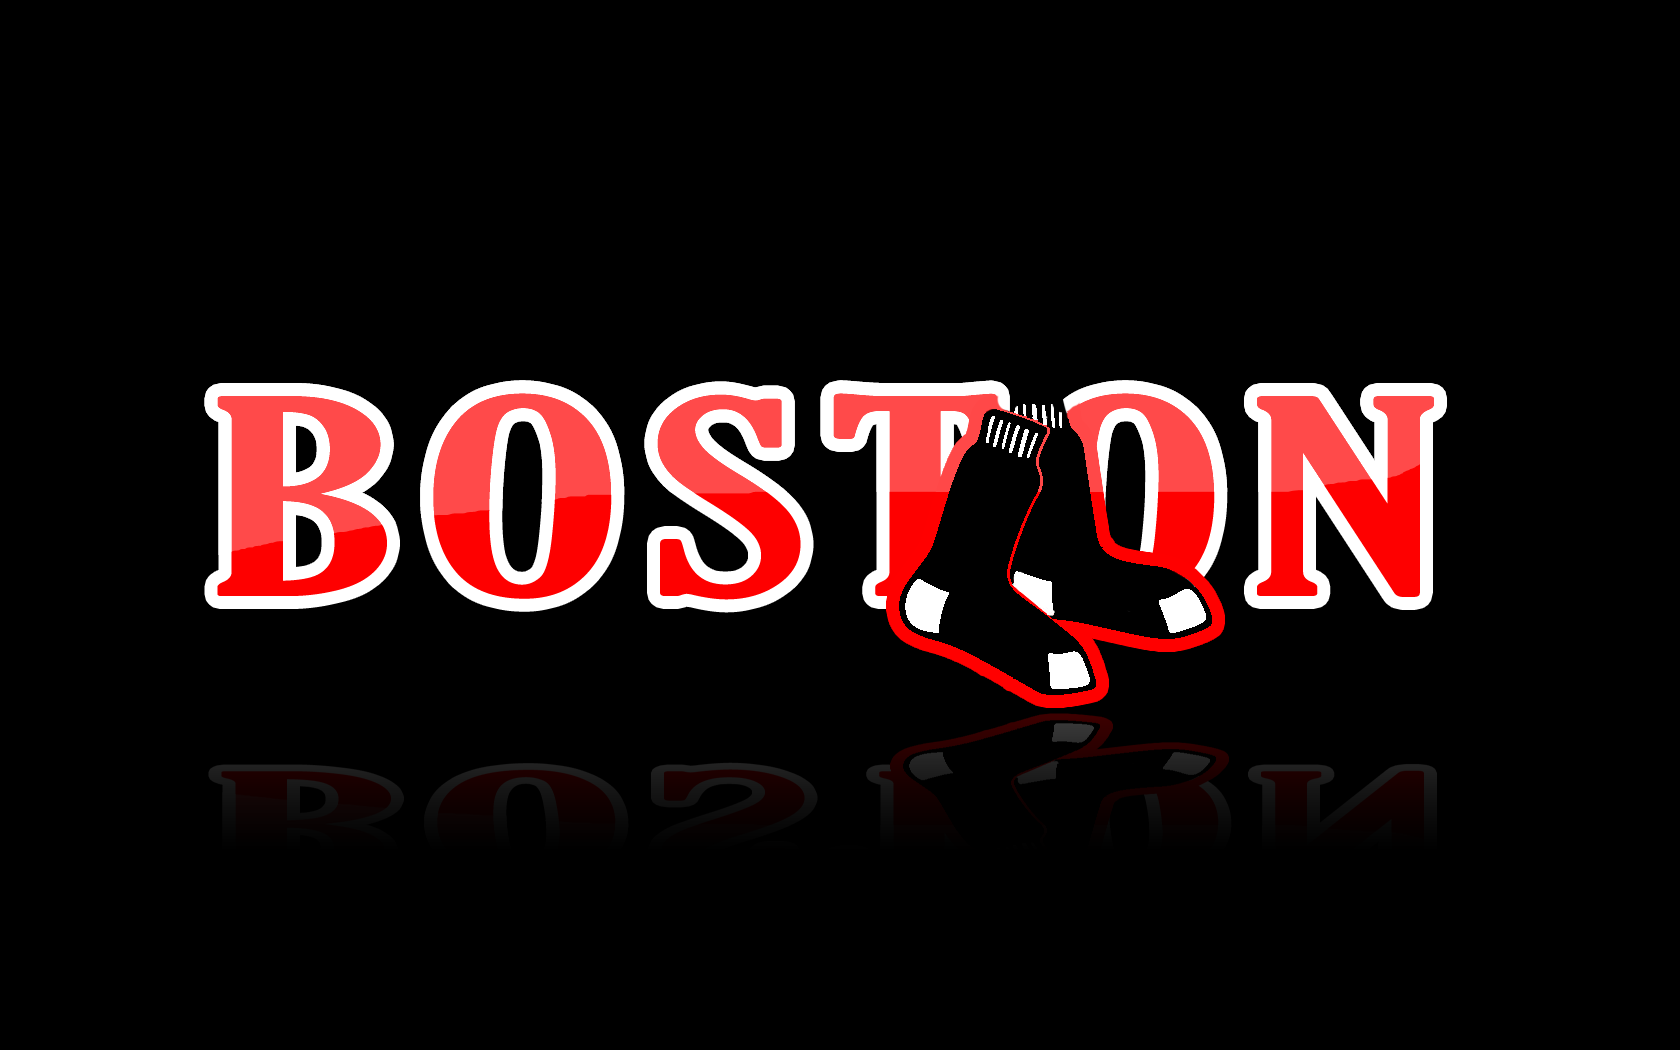 com6859the ultimate boston red sox wallpaper collection 1680x1050